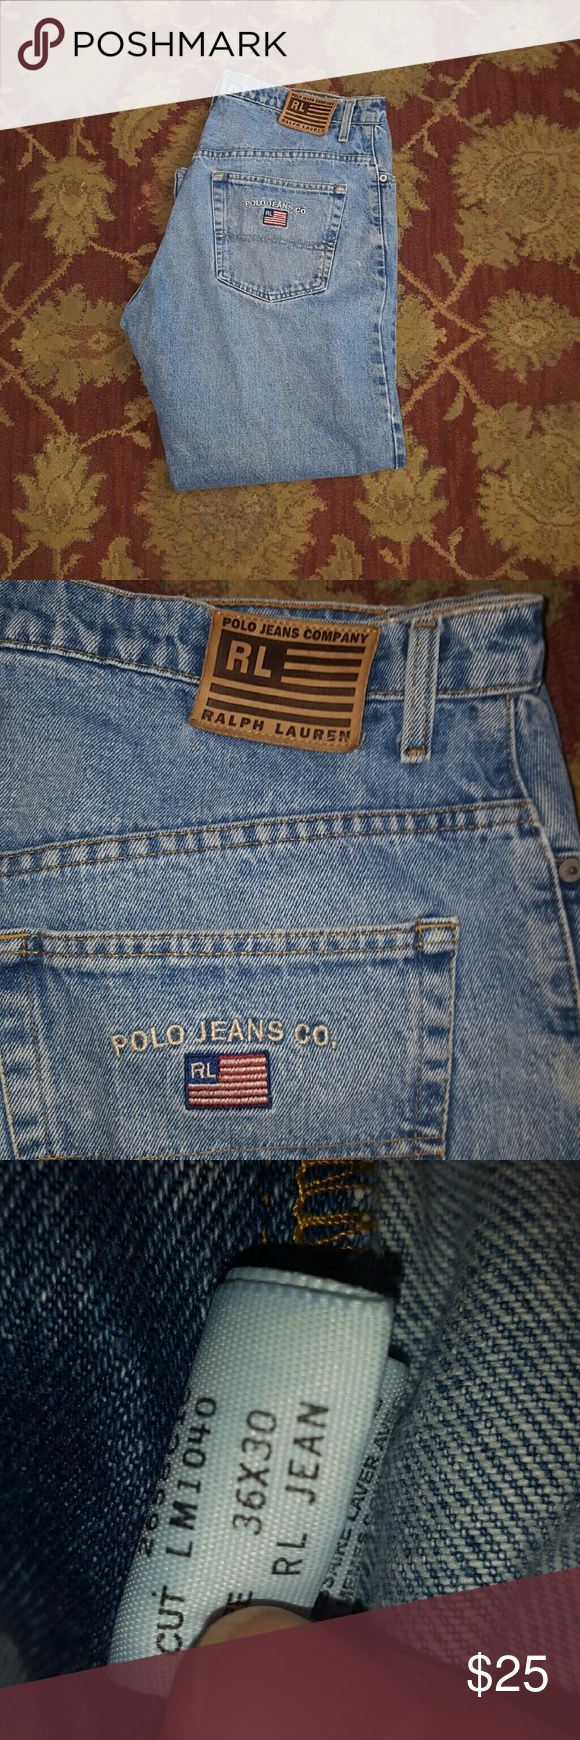 Ralph Lauren men's Polo jeans Ralph Lauren men's Polo jeans size 36x30 Ralph Lauren Polo Jeans Relaxed